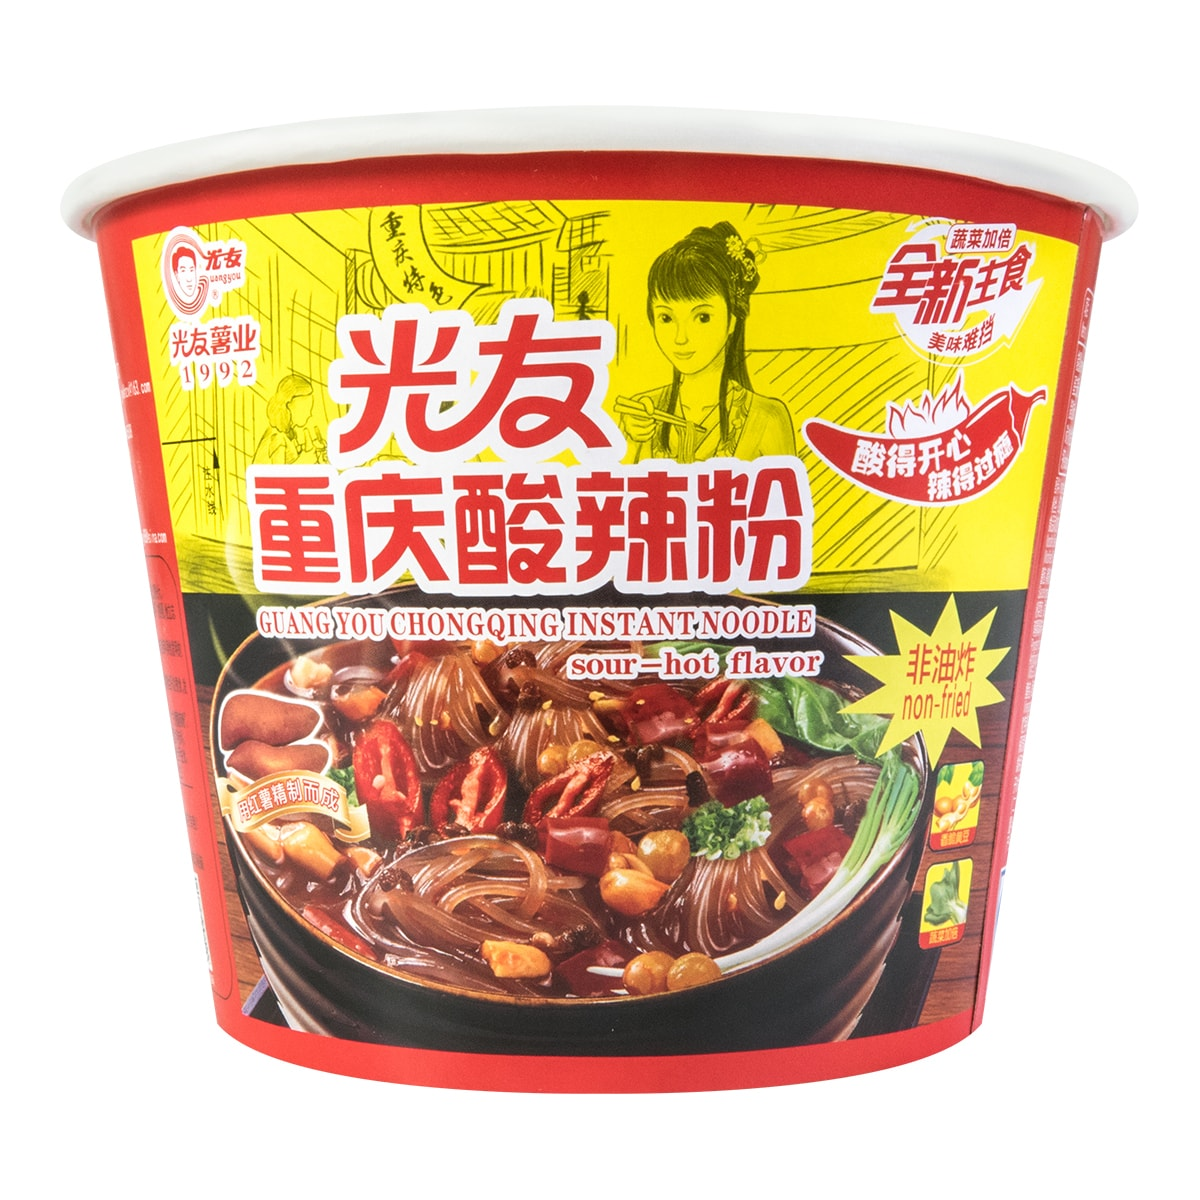 GUANG YOU Chong Qing Instant Noodle Sour-Hot Flavor 90g